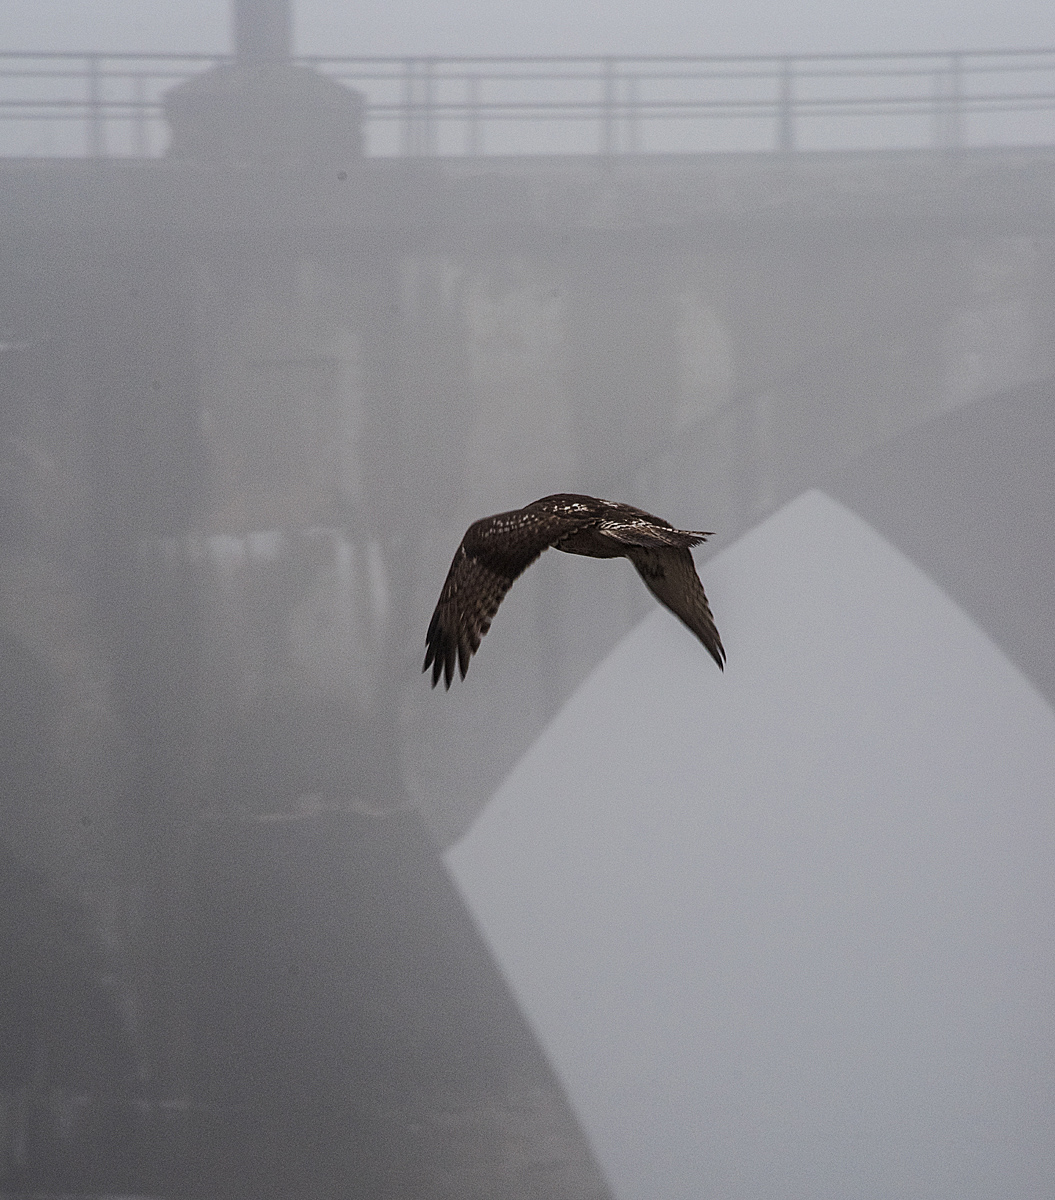 Hunting in the Mist